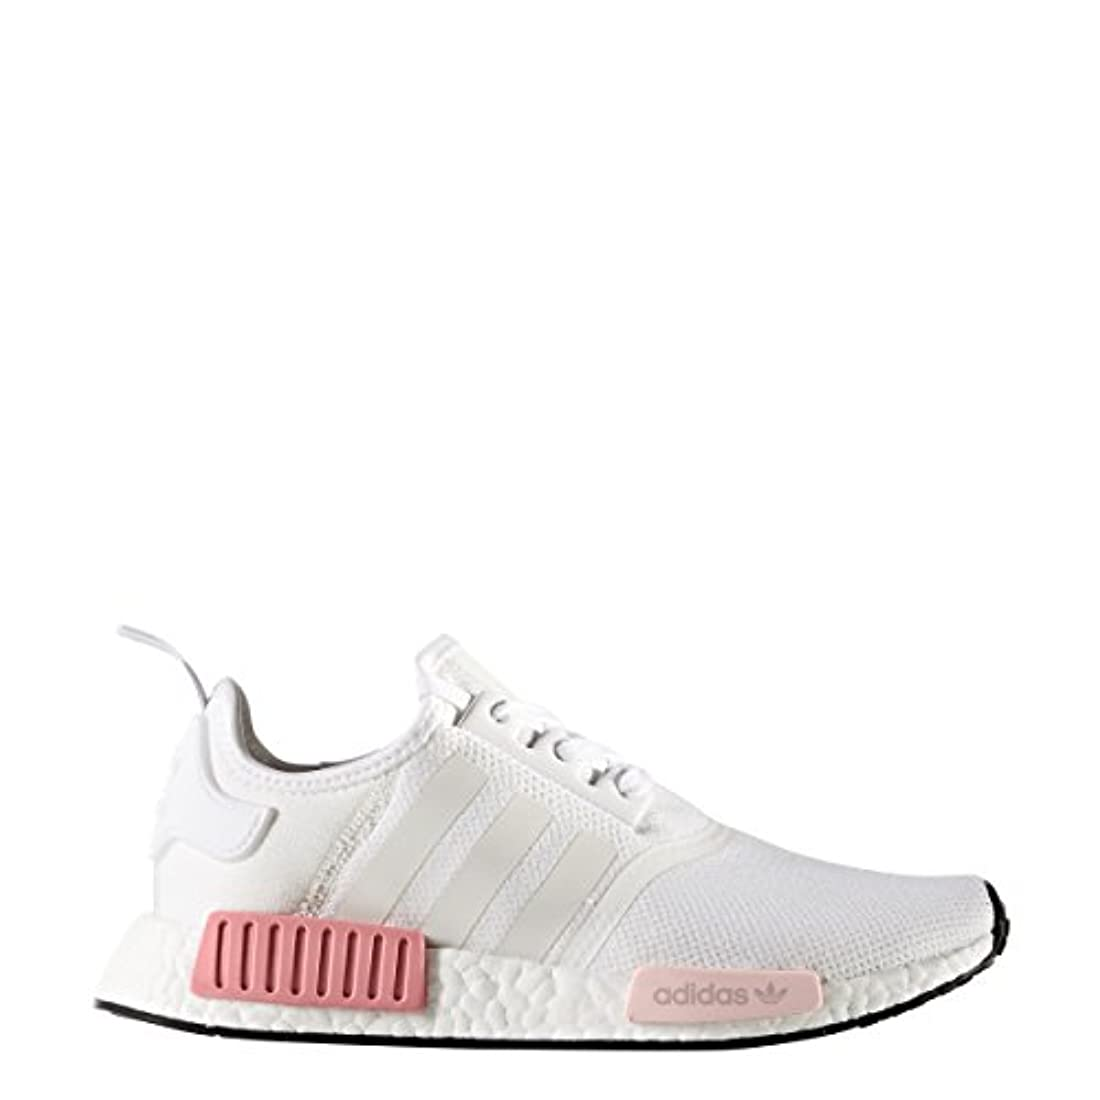 Adidas NMD XR1 PK Glitch Camo Mens sizes S32216